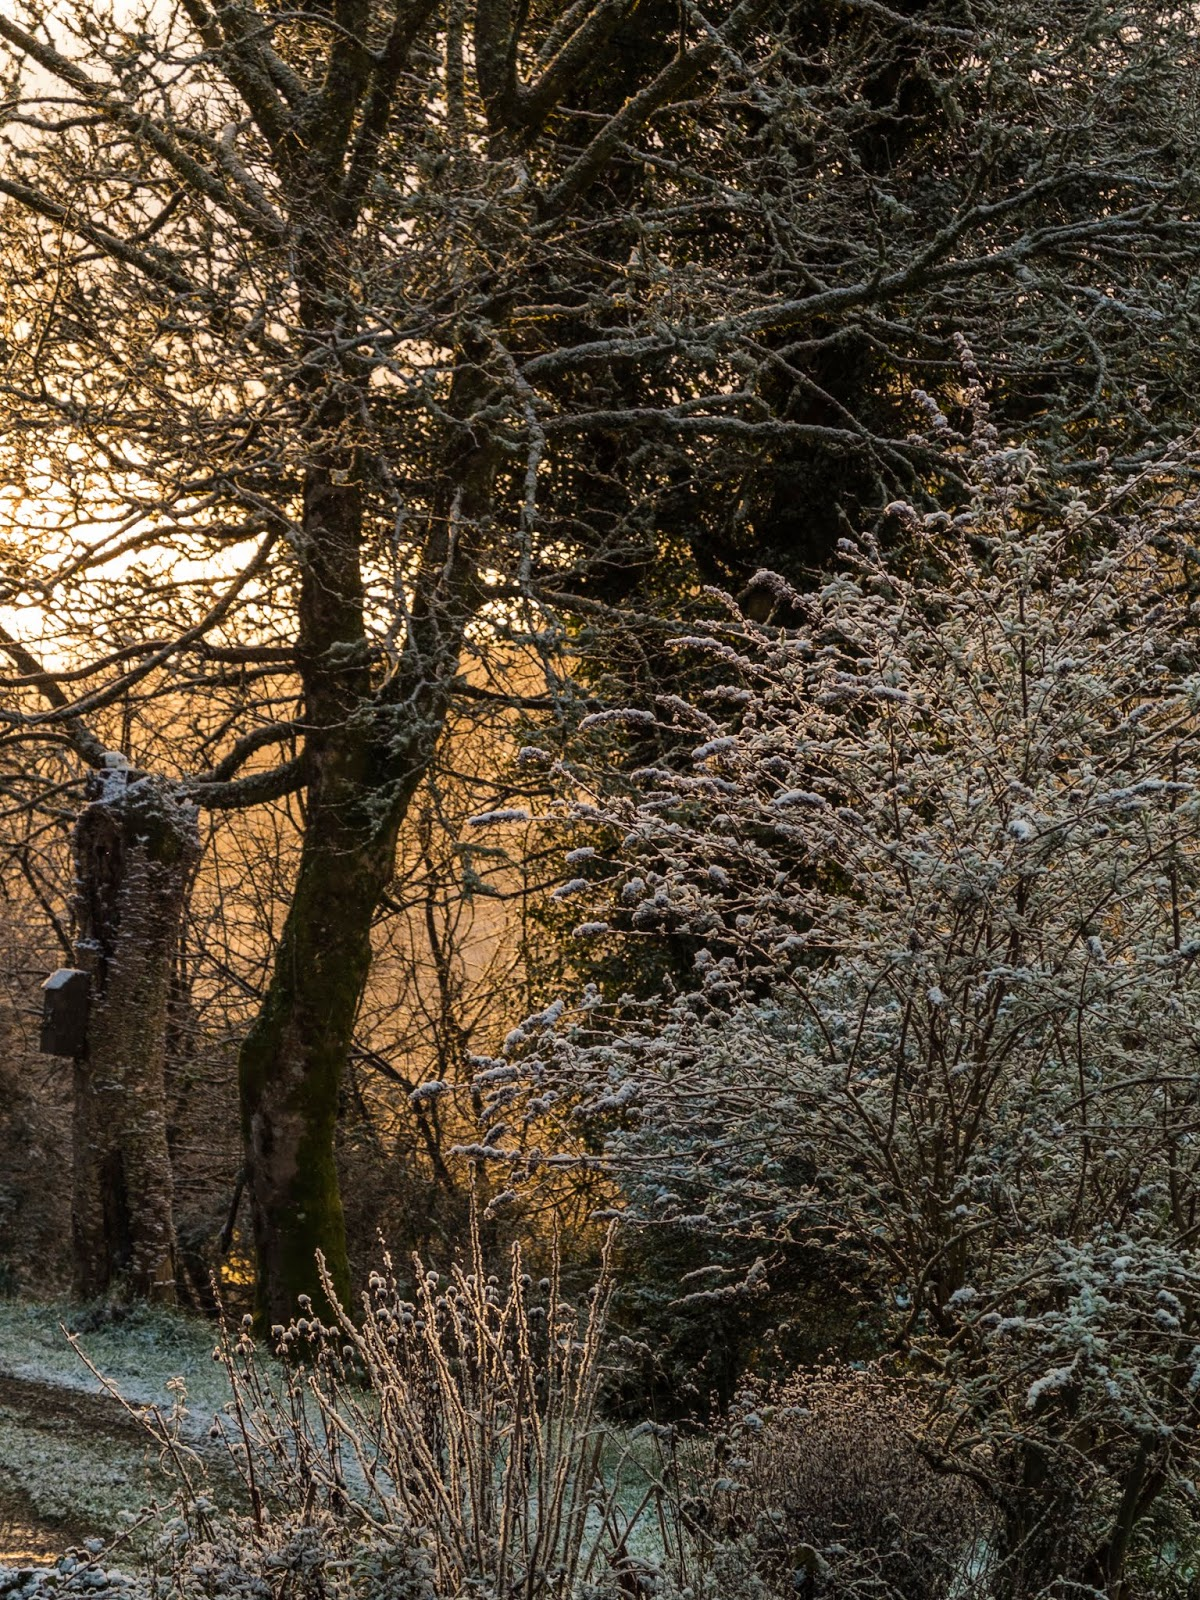 Snow covered plants and trees at sunset in the Boggeragh Mountains.